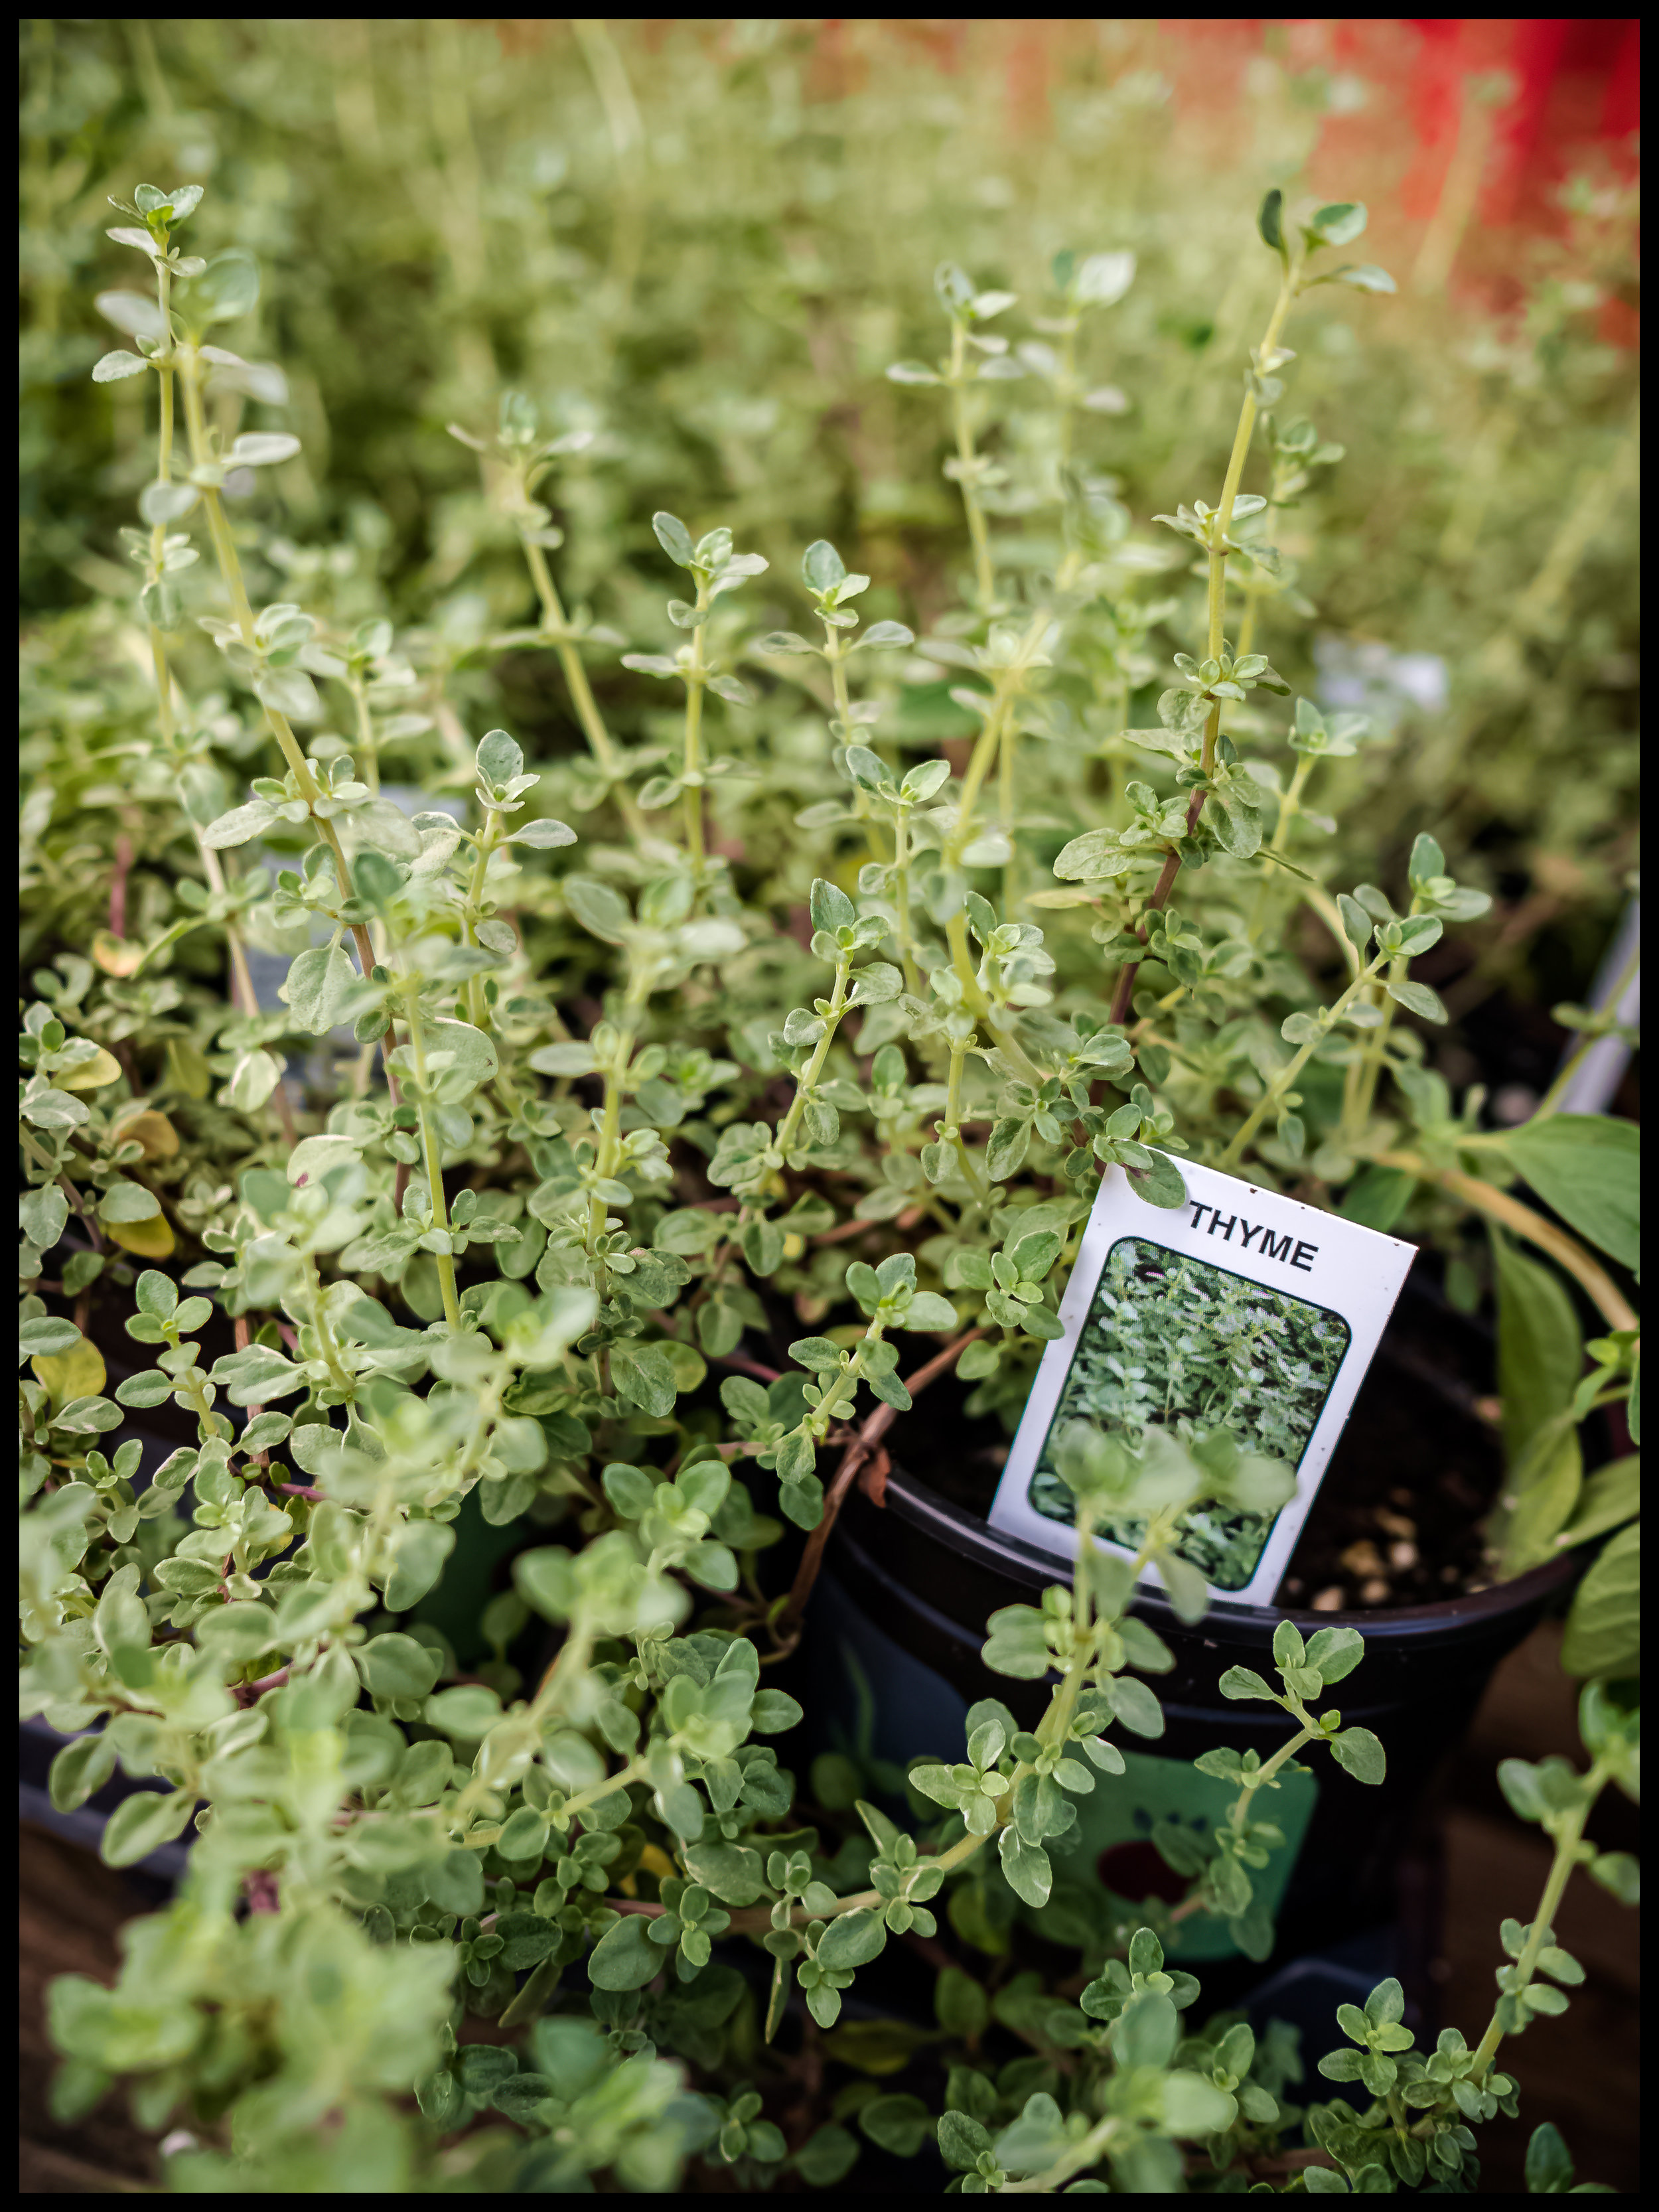 Every dish gets better with time and many are improved with Thyme